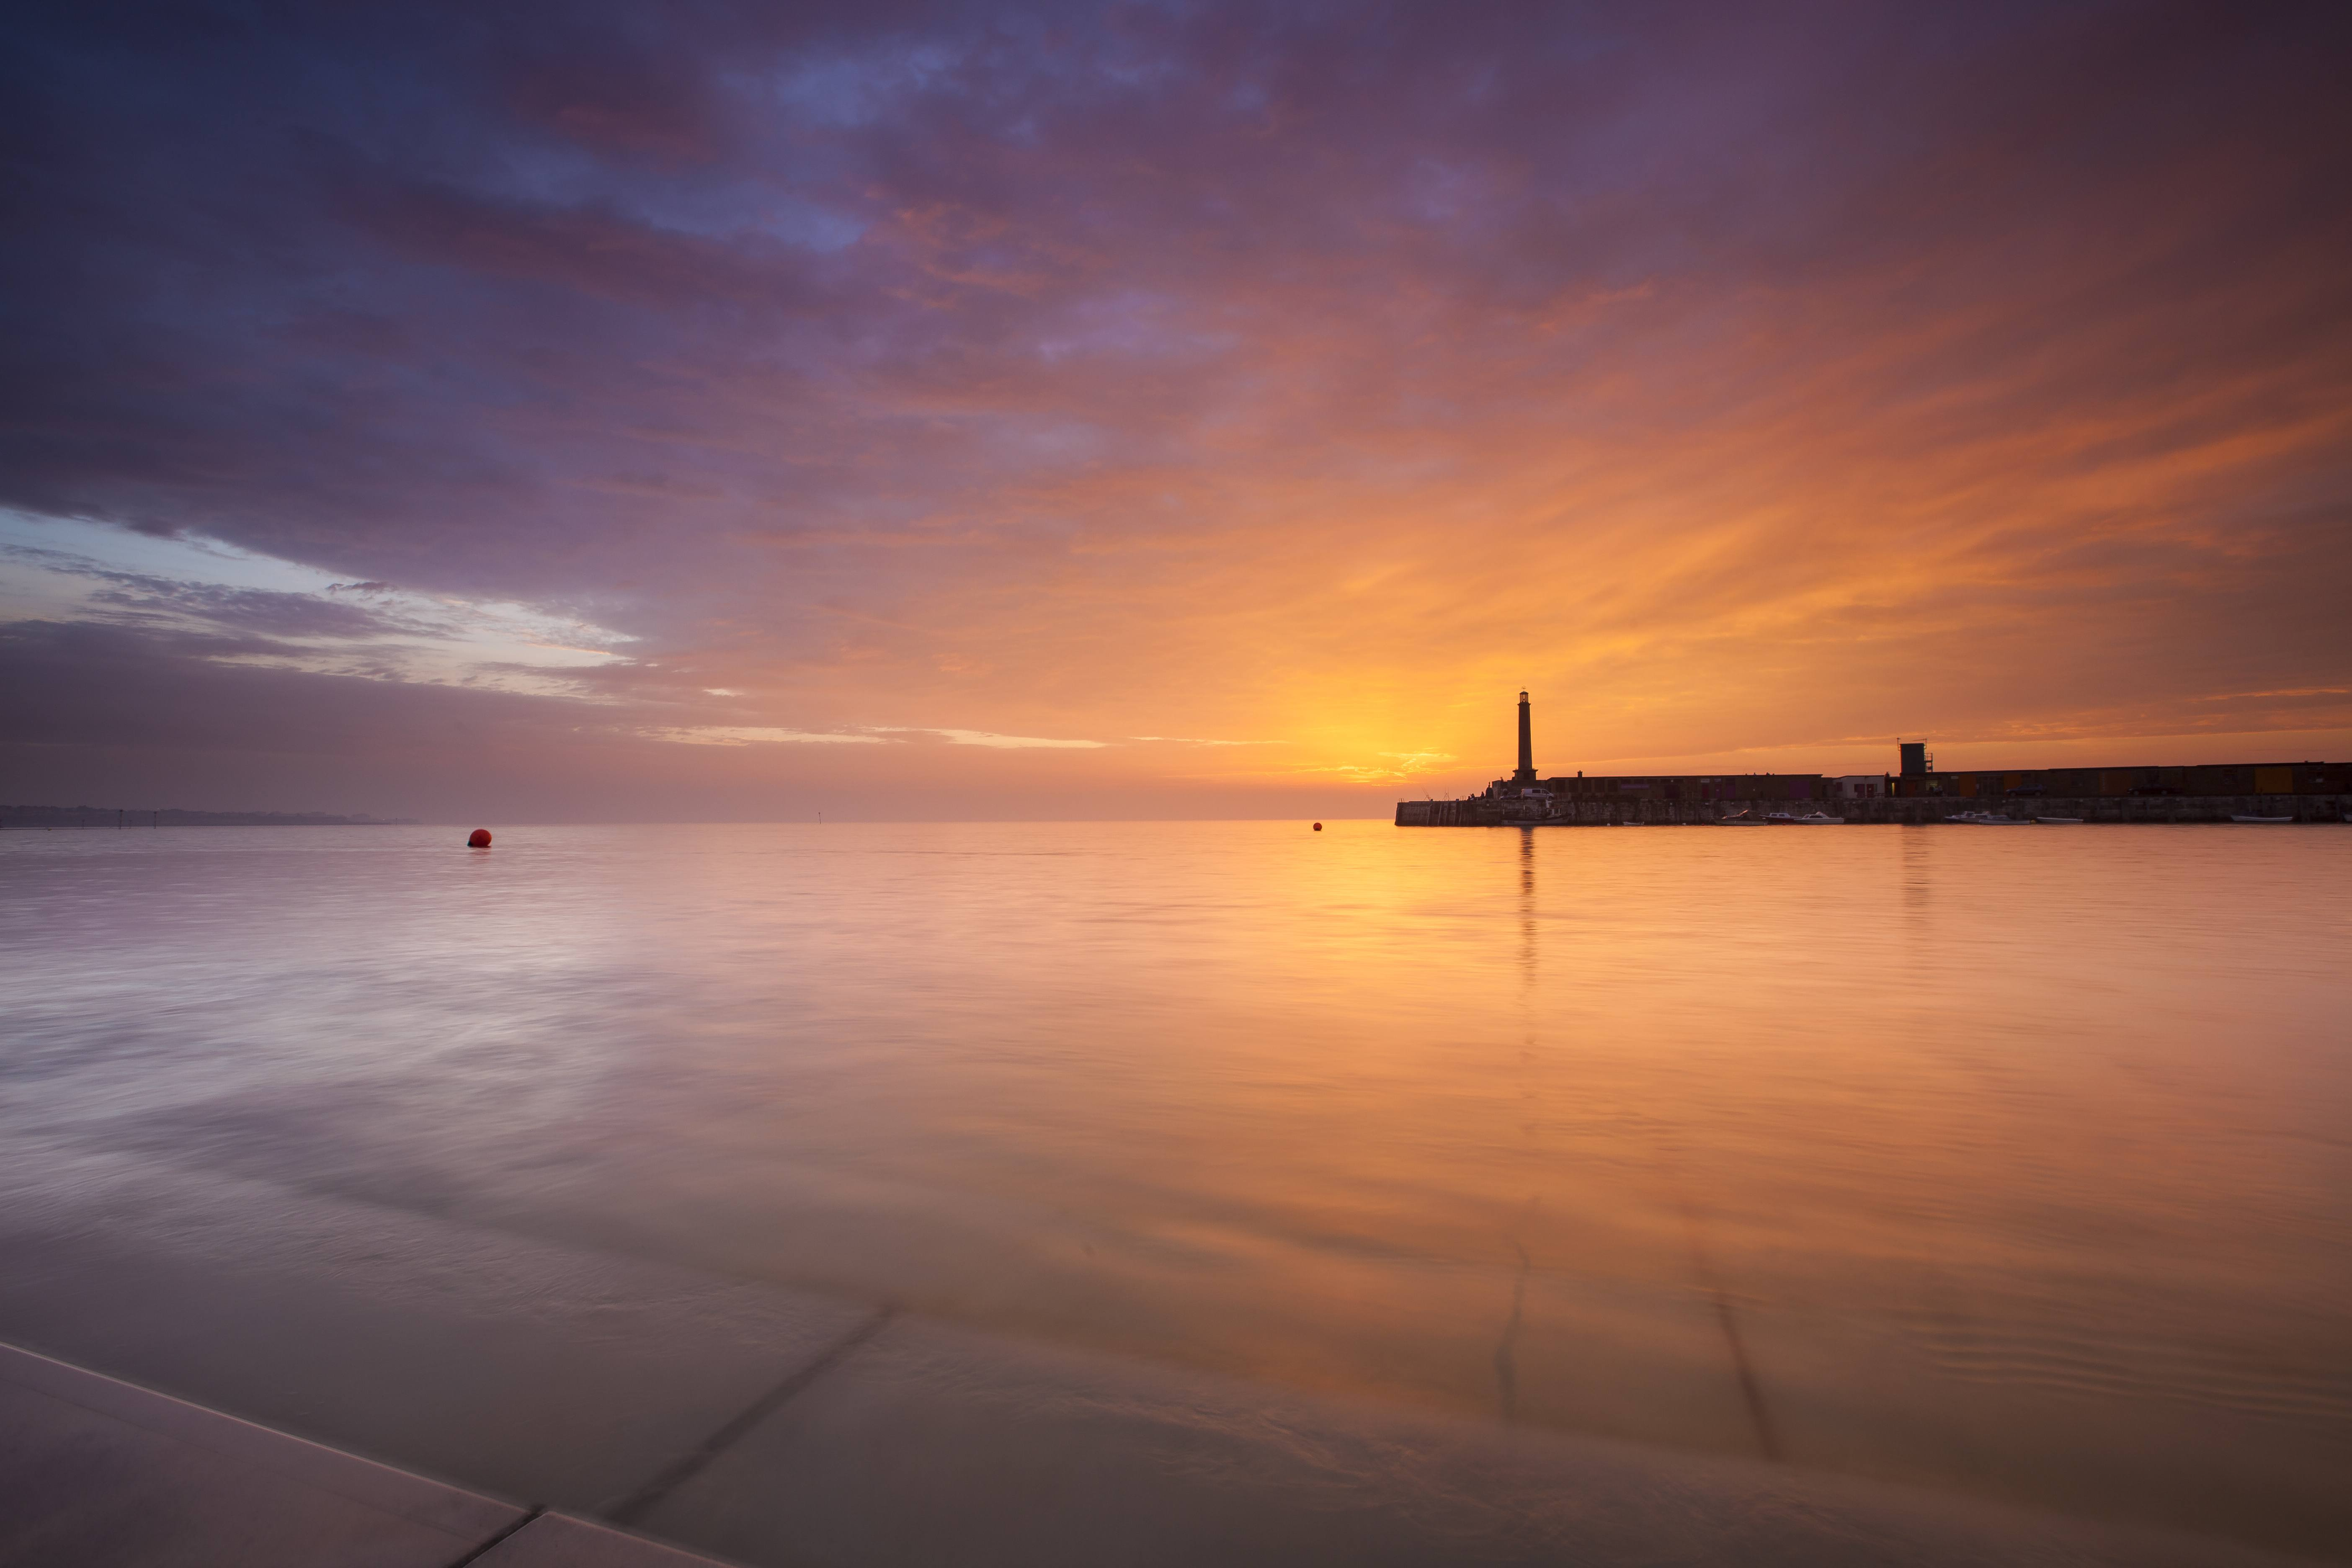 image from Visit Thanet